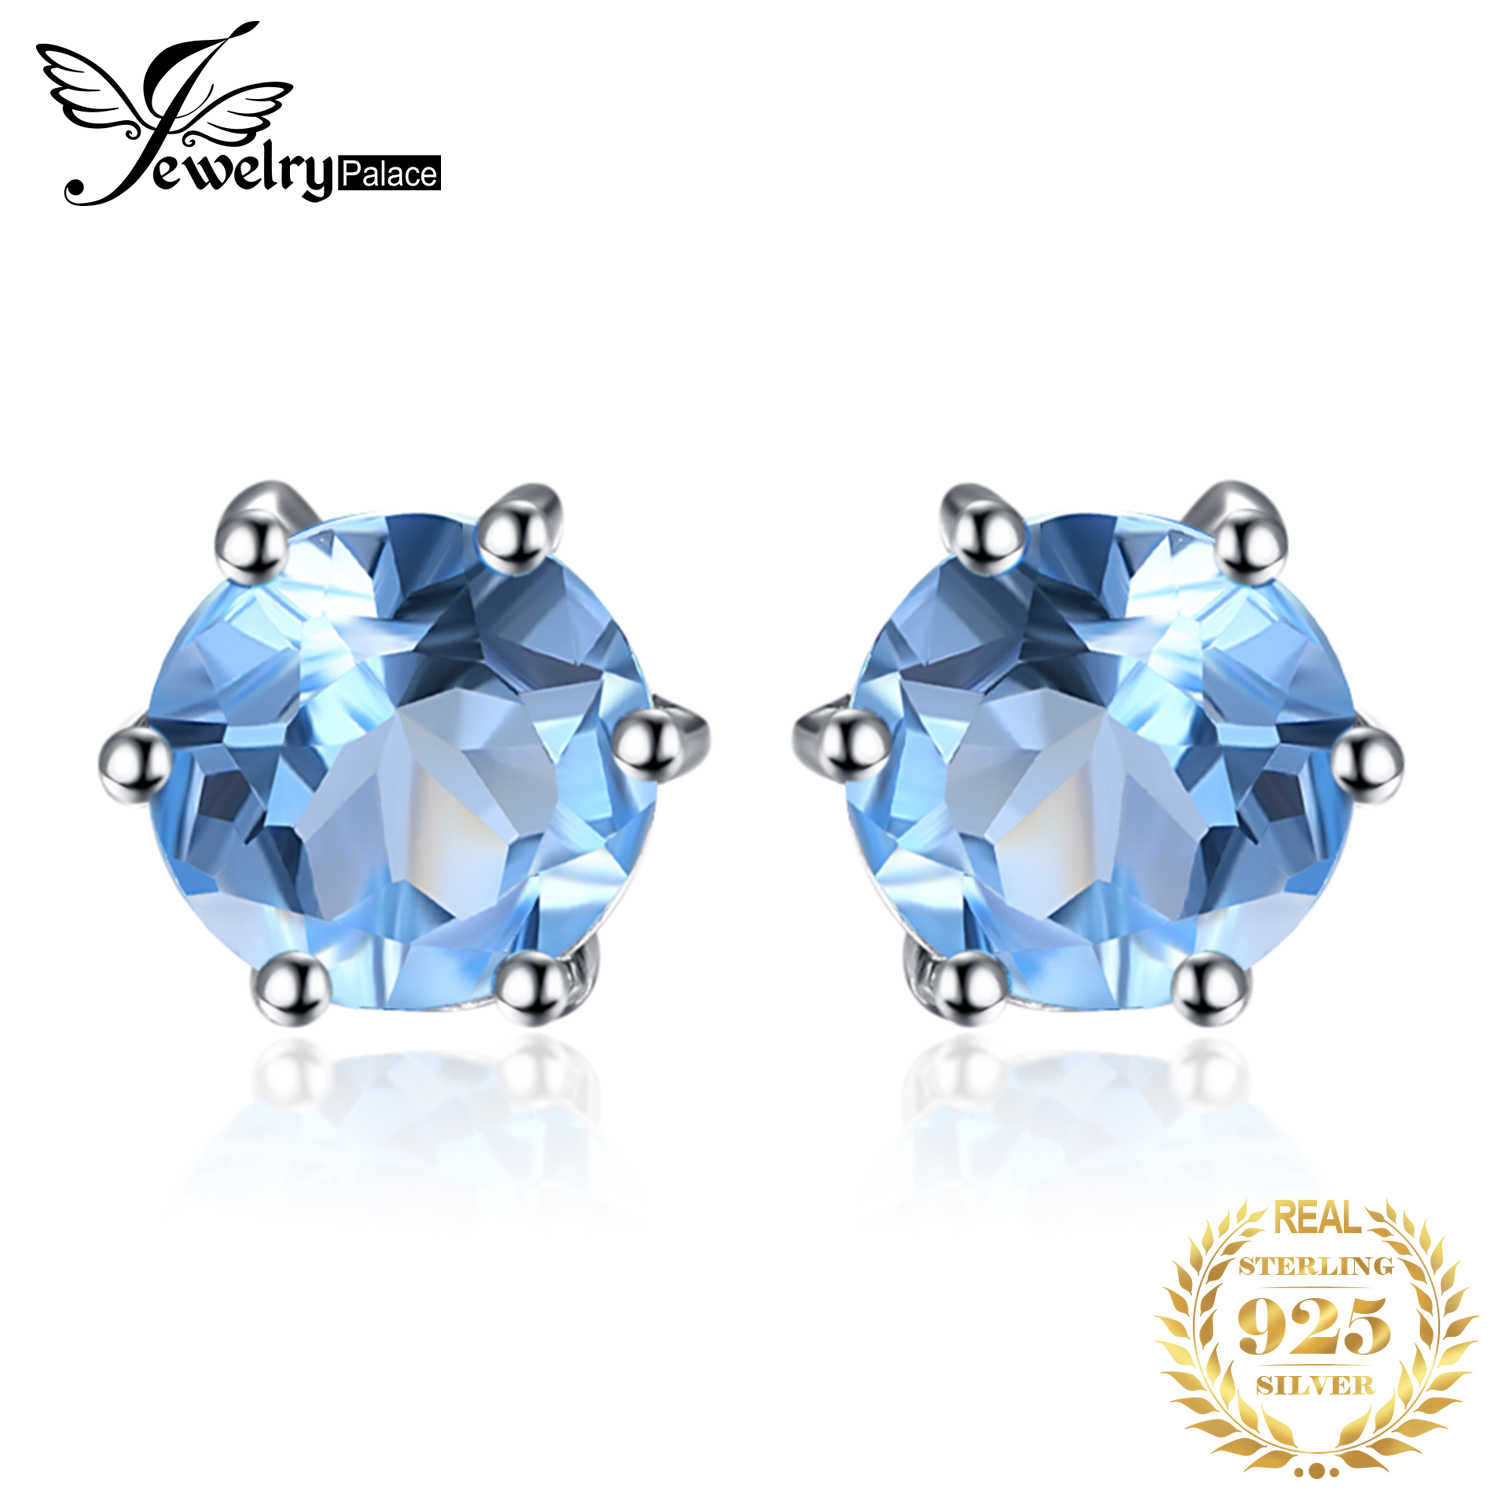 JPalace Genuine Blue Topaz Stud Earrings 925 Sterling Silver Earrings For Women Gemstones Korean Earings Fashion Jewelry 2019